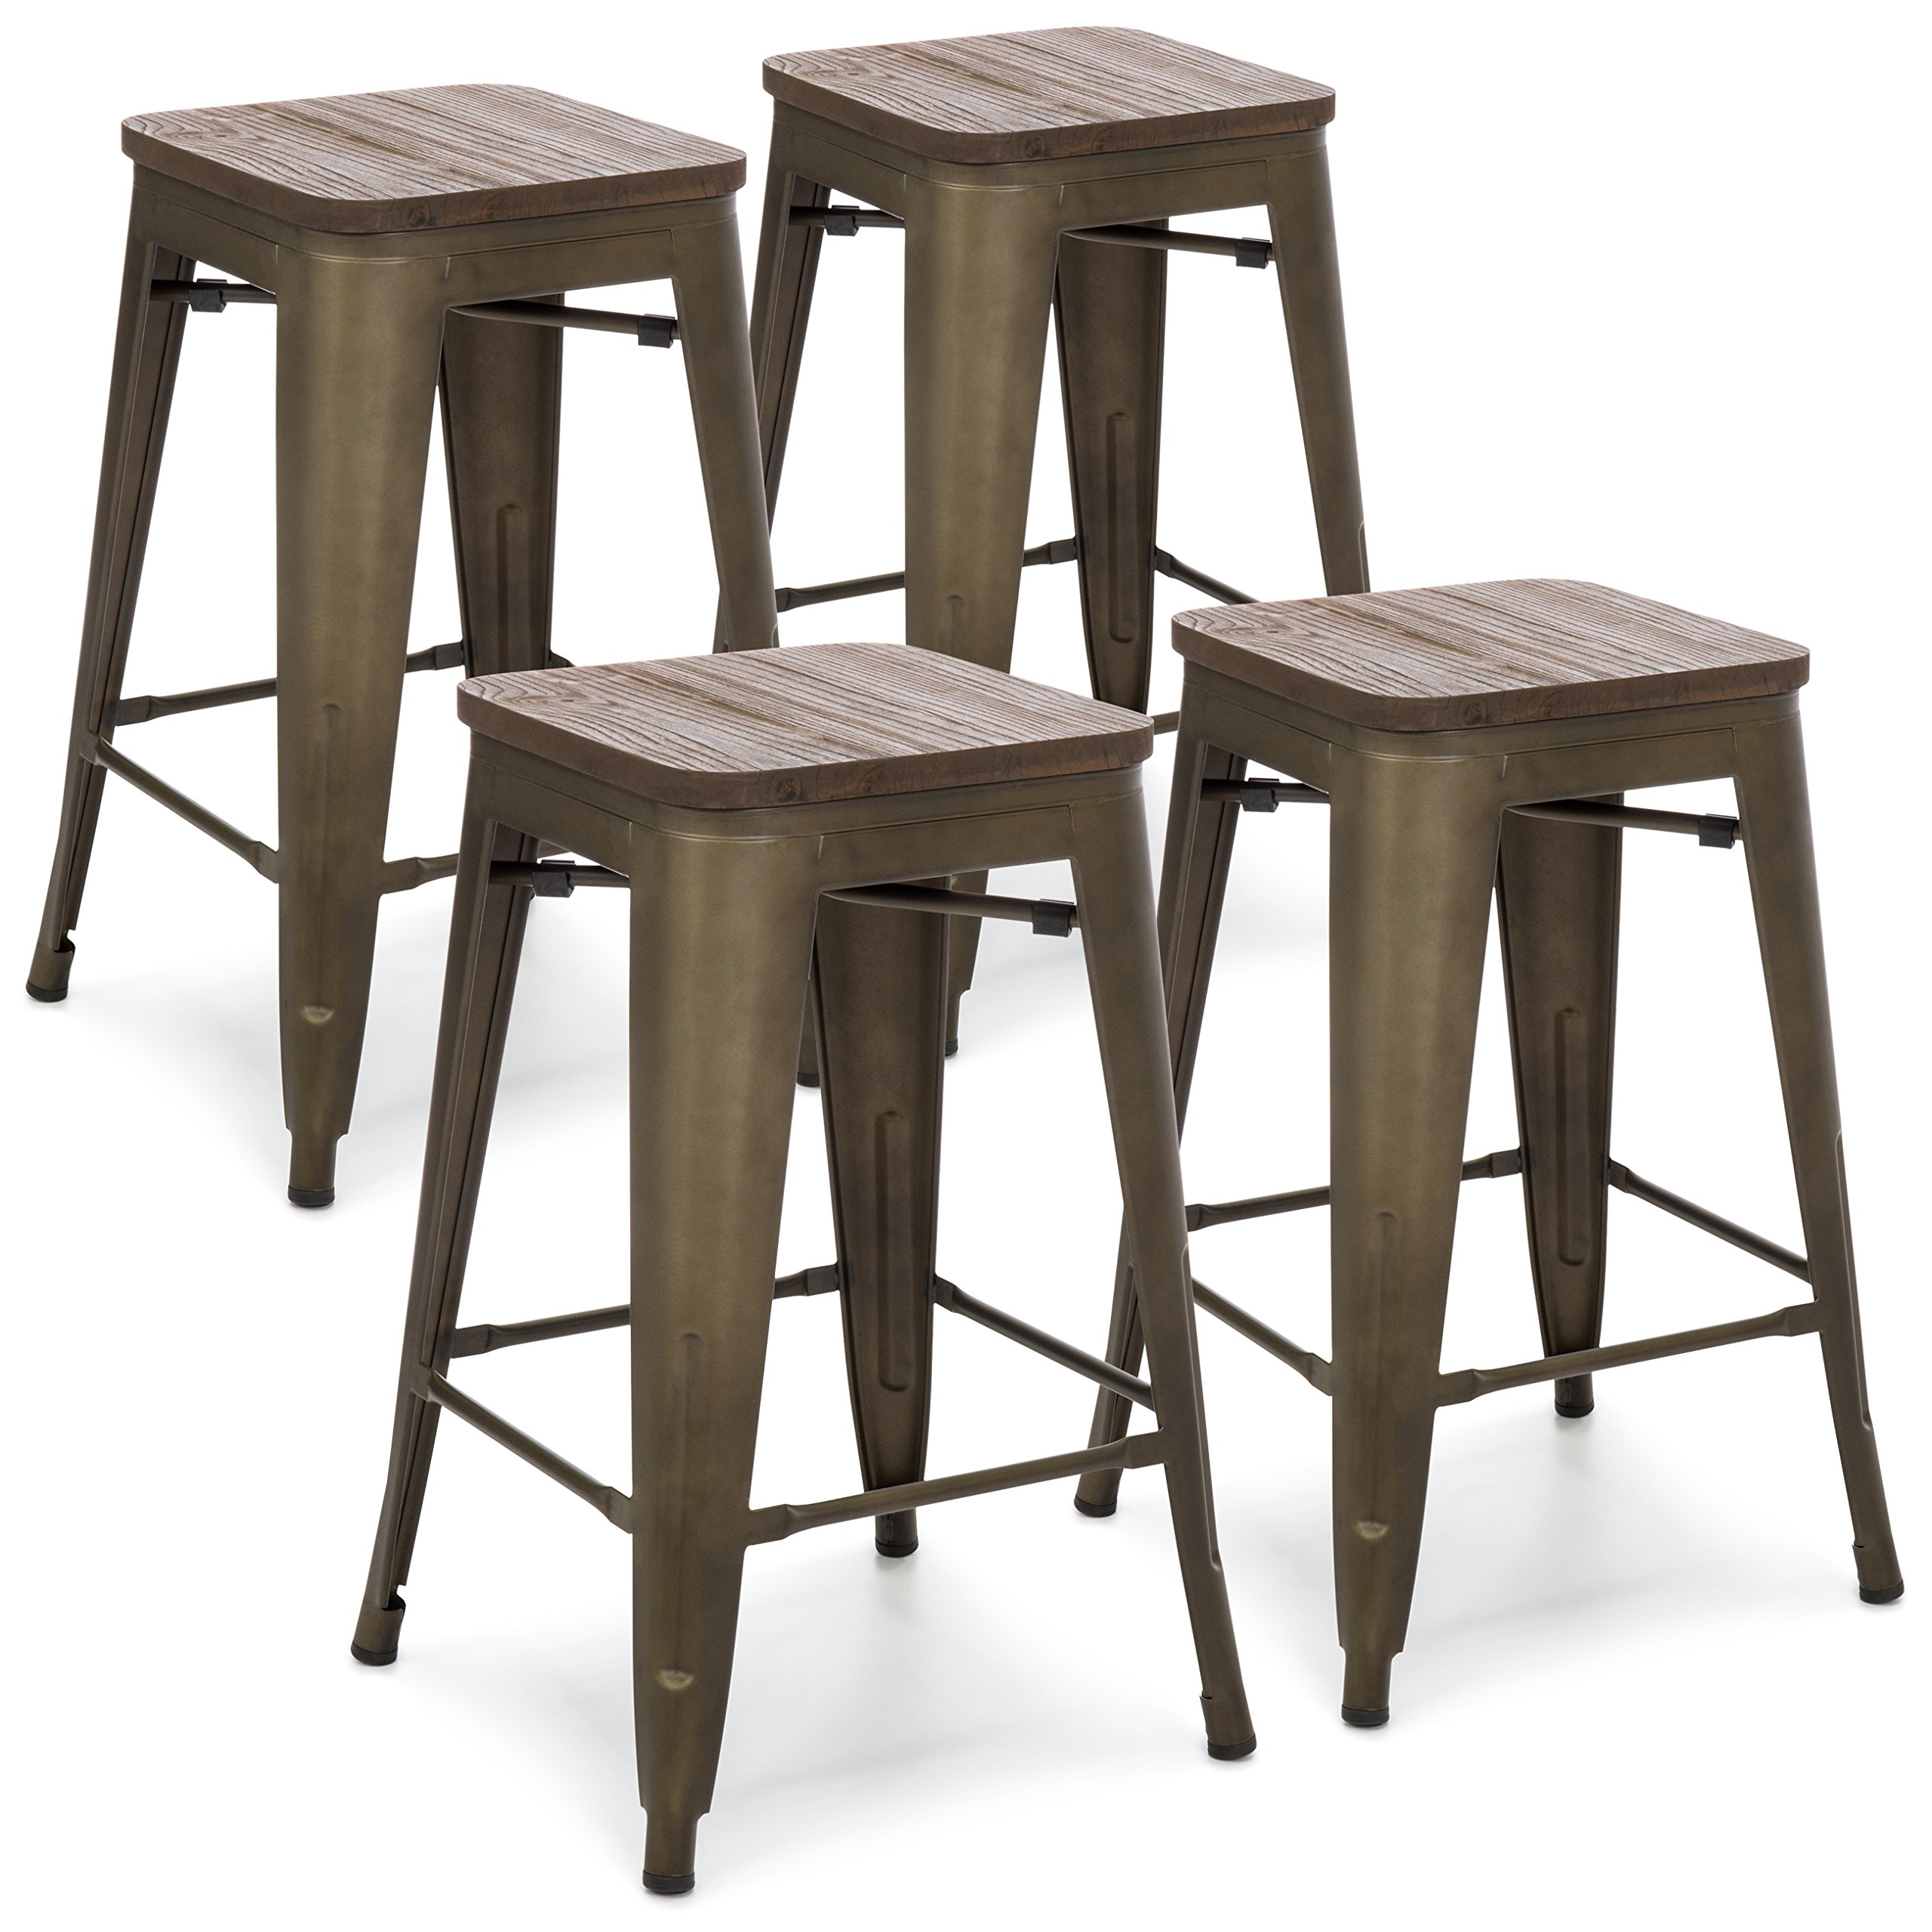 Best Choice Products 24in Set of 4 Stackable Industrial Distressed Metal Counter Height Bar Stools w/Wood Seat - Copper by Best Choice Products (Image #6)